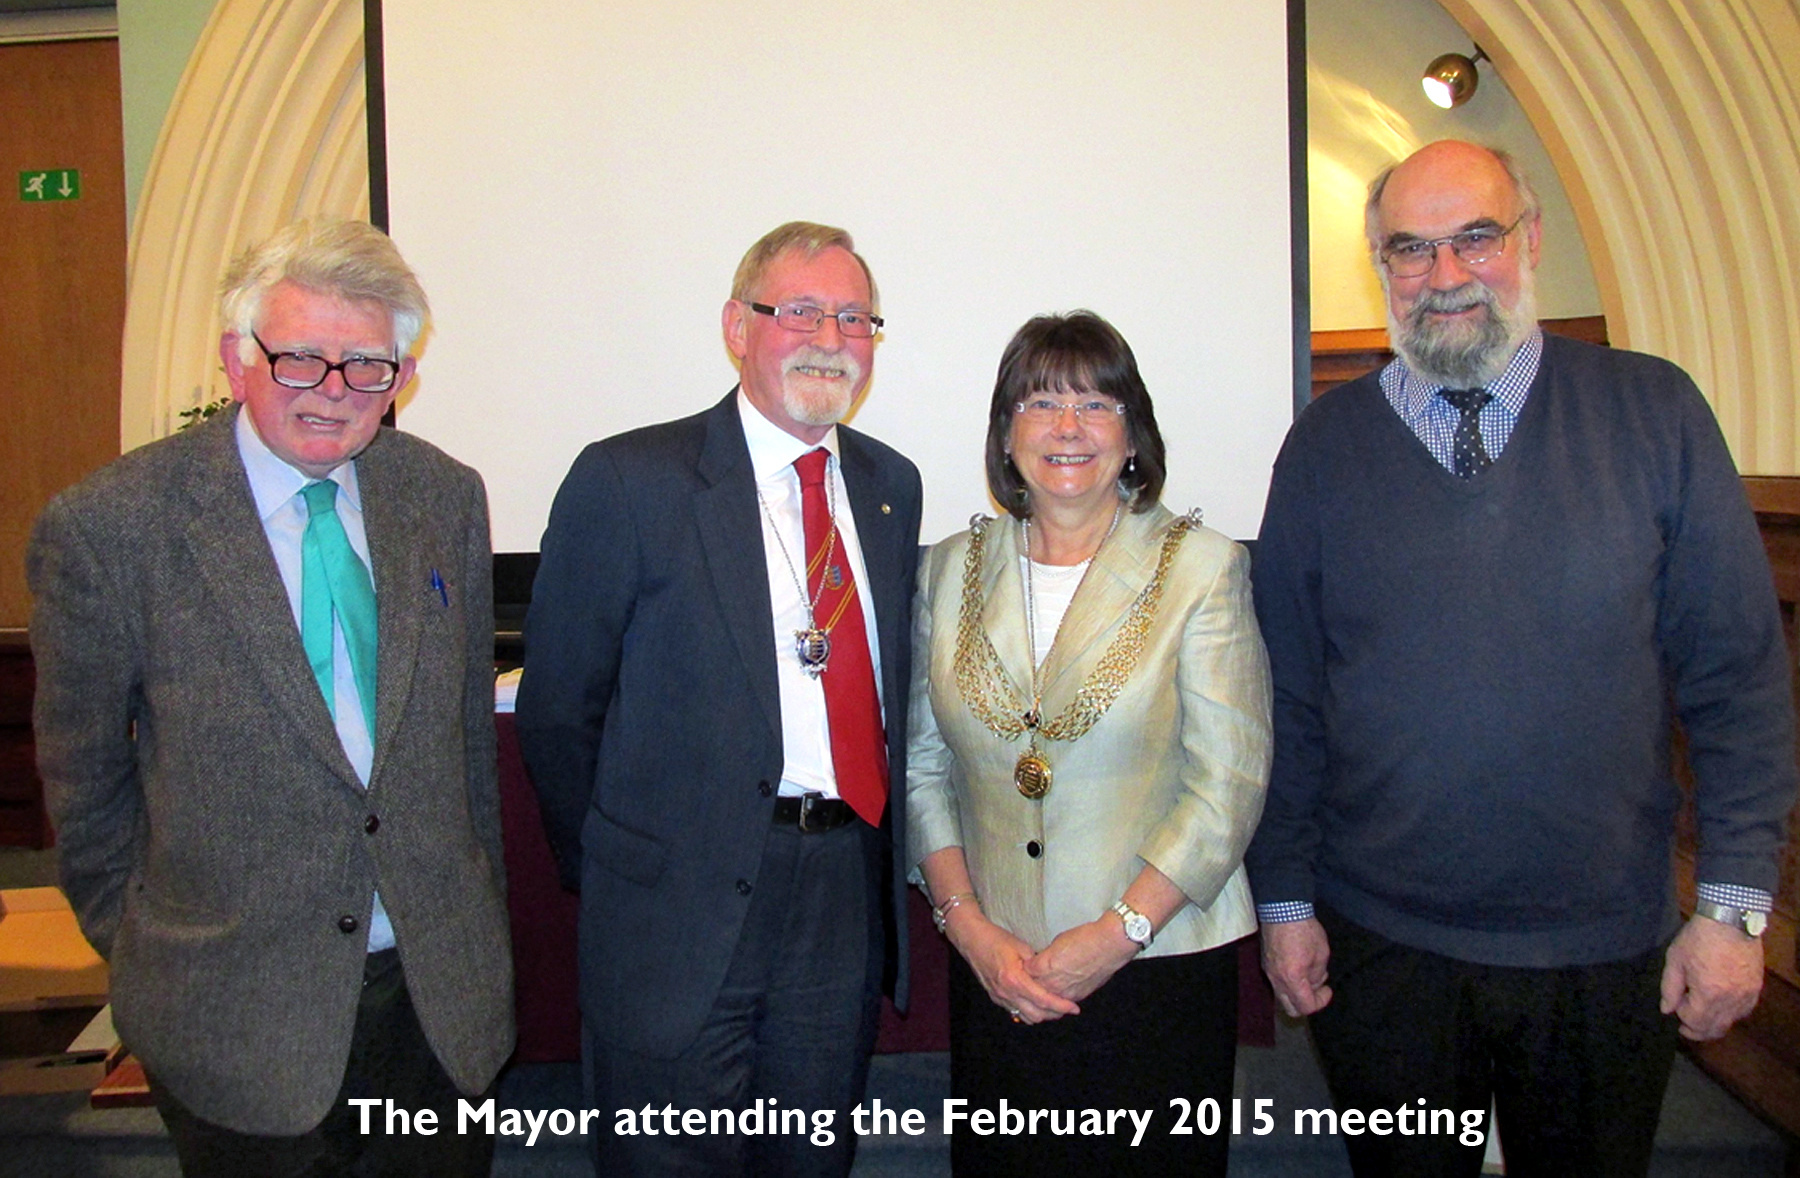 Mayor attends Feb 2015 Meeting